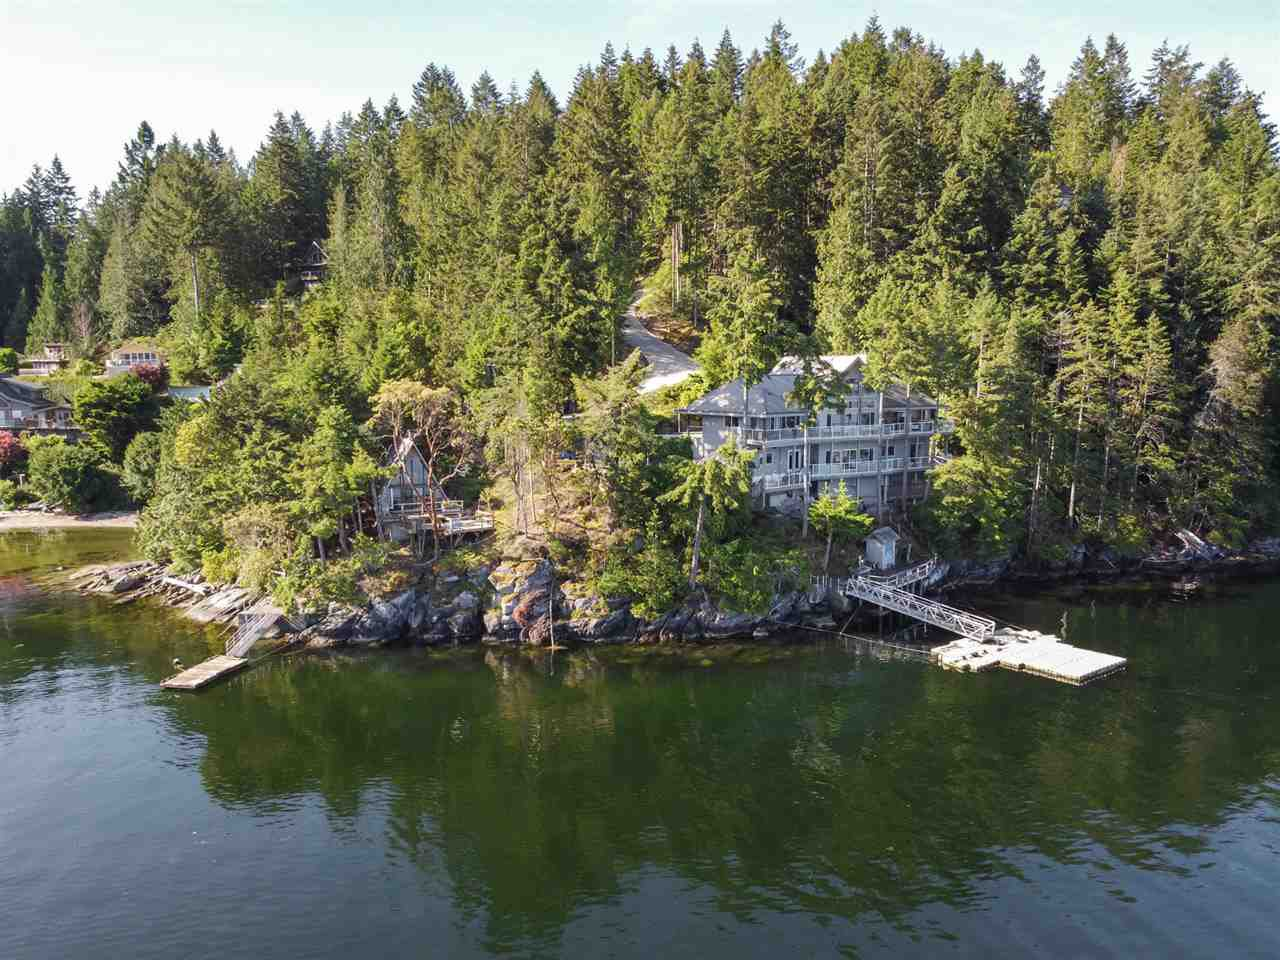 Main Photo: 6129 - 6133 CORACLE Drive in Sechelt: Sechelt District House for sale (Sunshine Coast)  : MLS®# R2456489